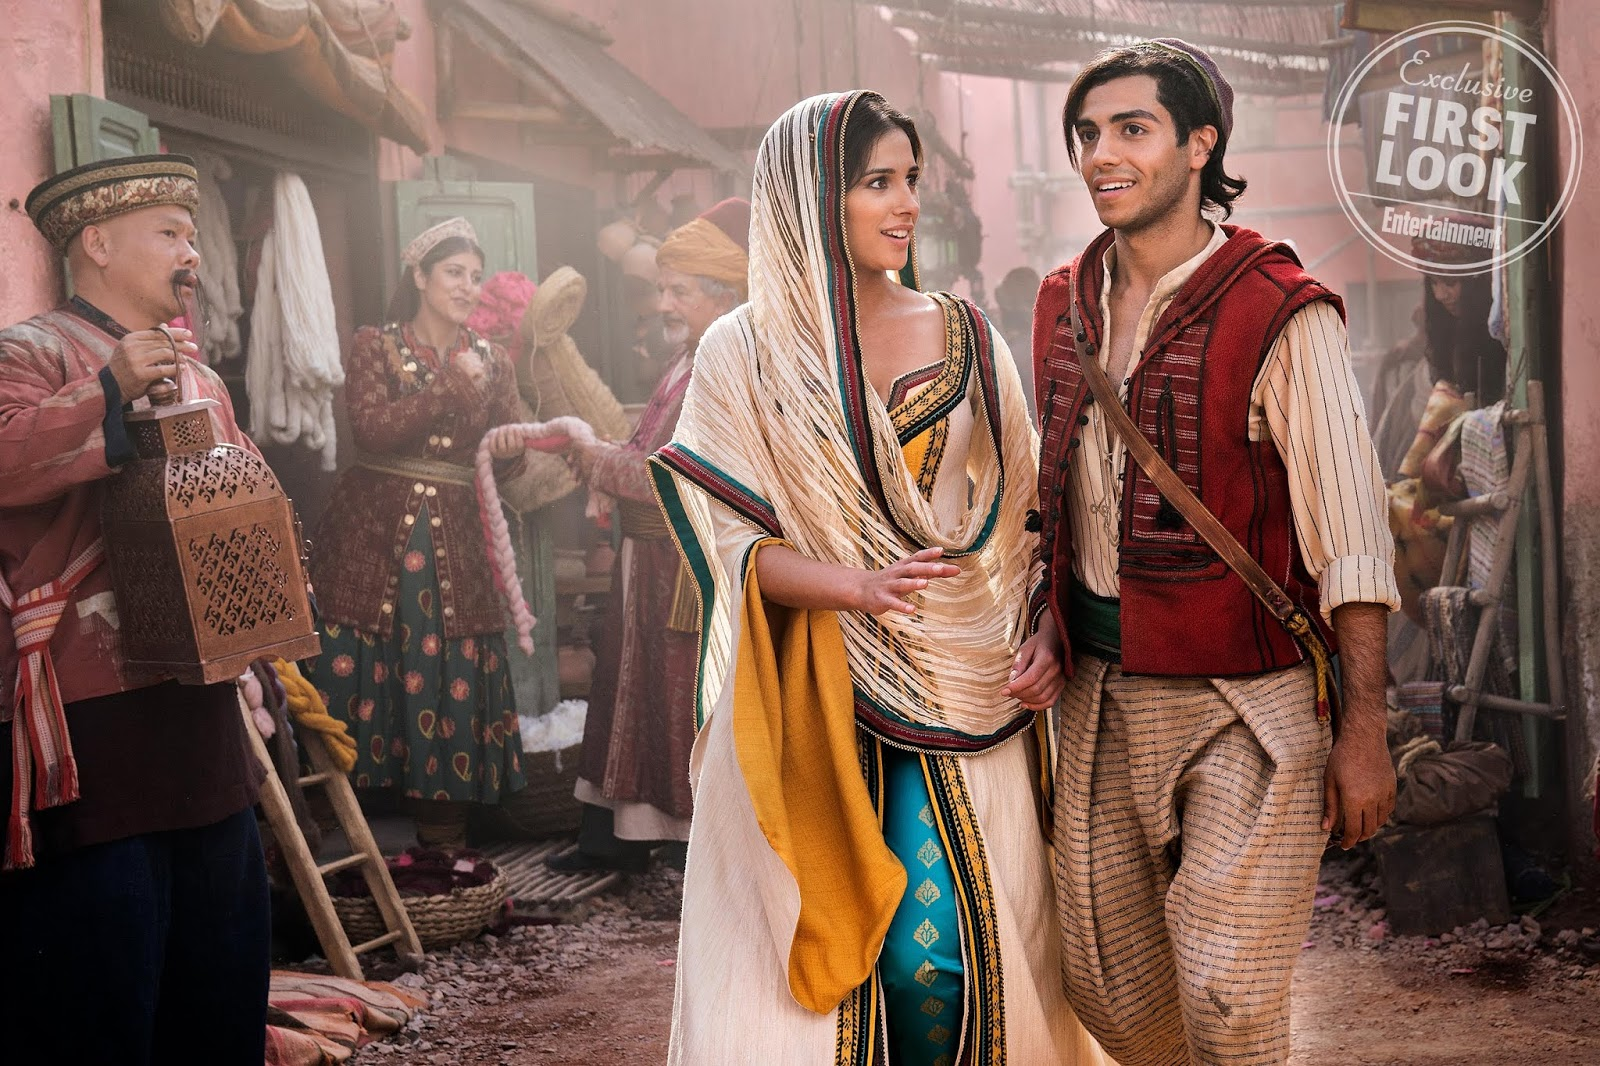 first look photos from Disney's live-action Aladdin